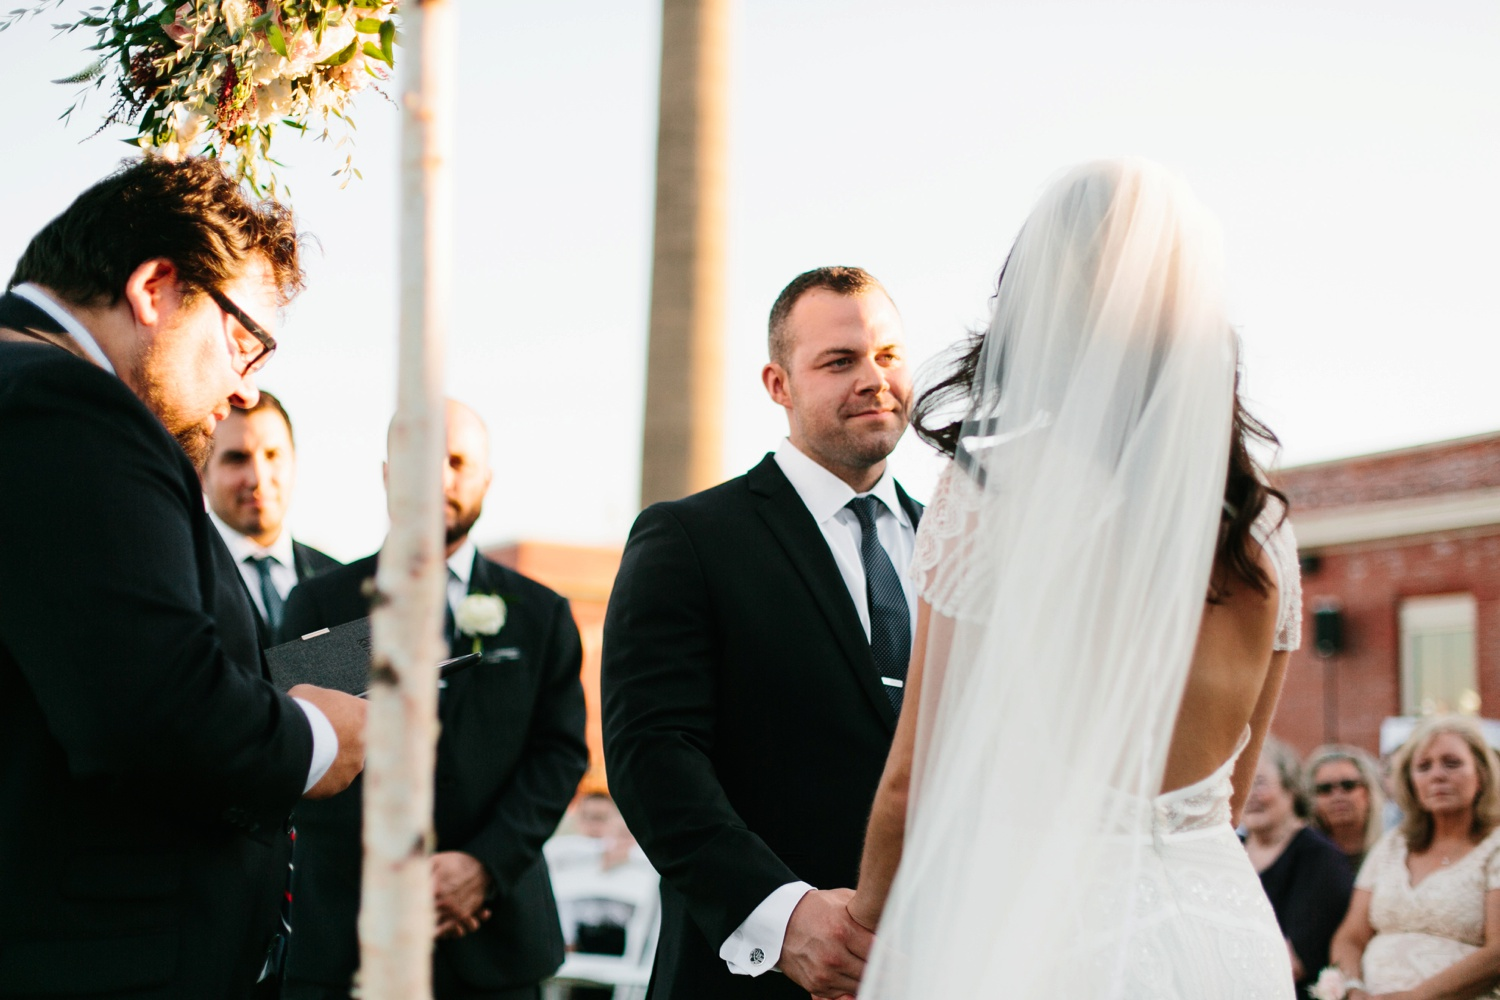 Kadee + Tyler | a raw, emotional wedding at the Filter Building on White Rock Lake in Dallas, TX by North Texas Wedding Photographer, Rachel Meagan Photography 144